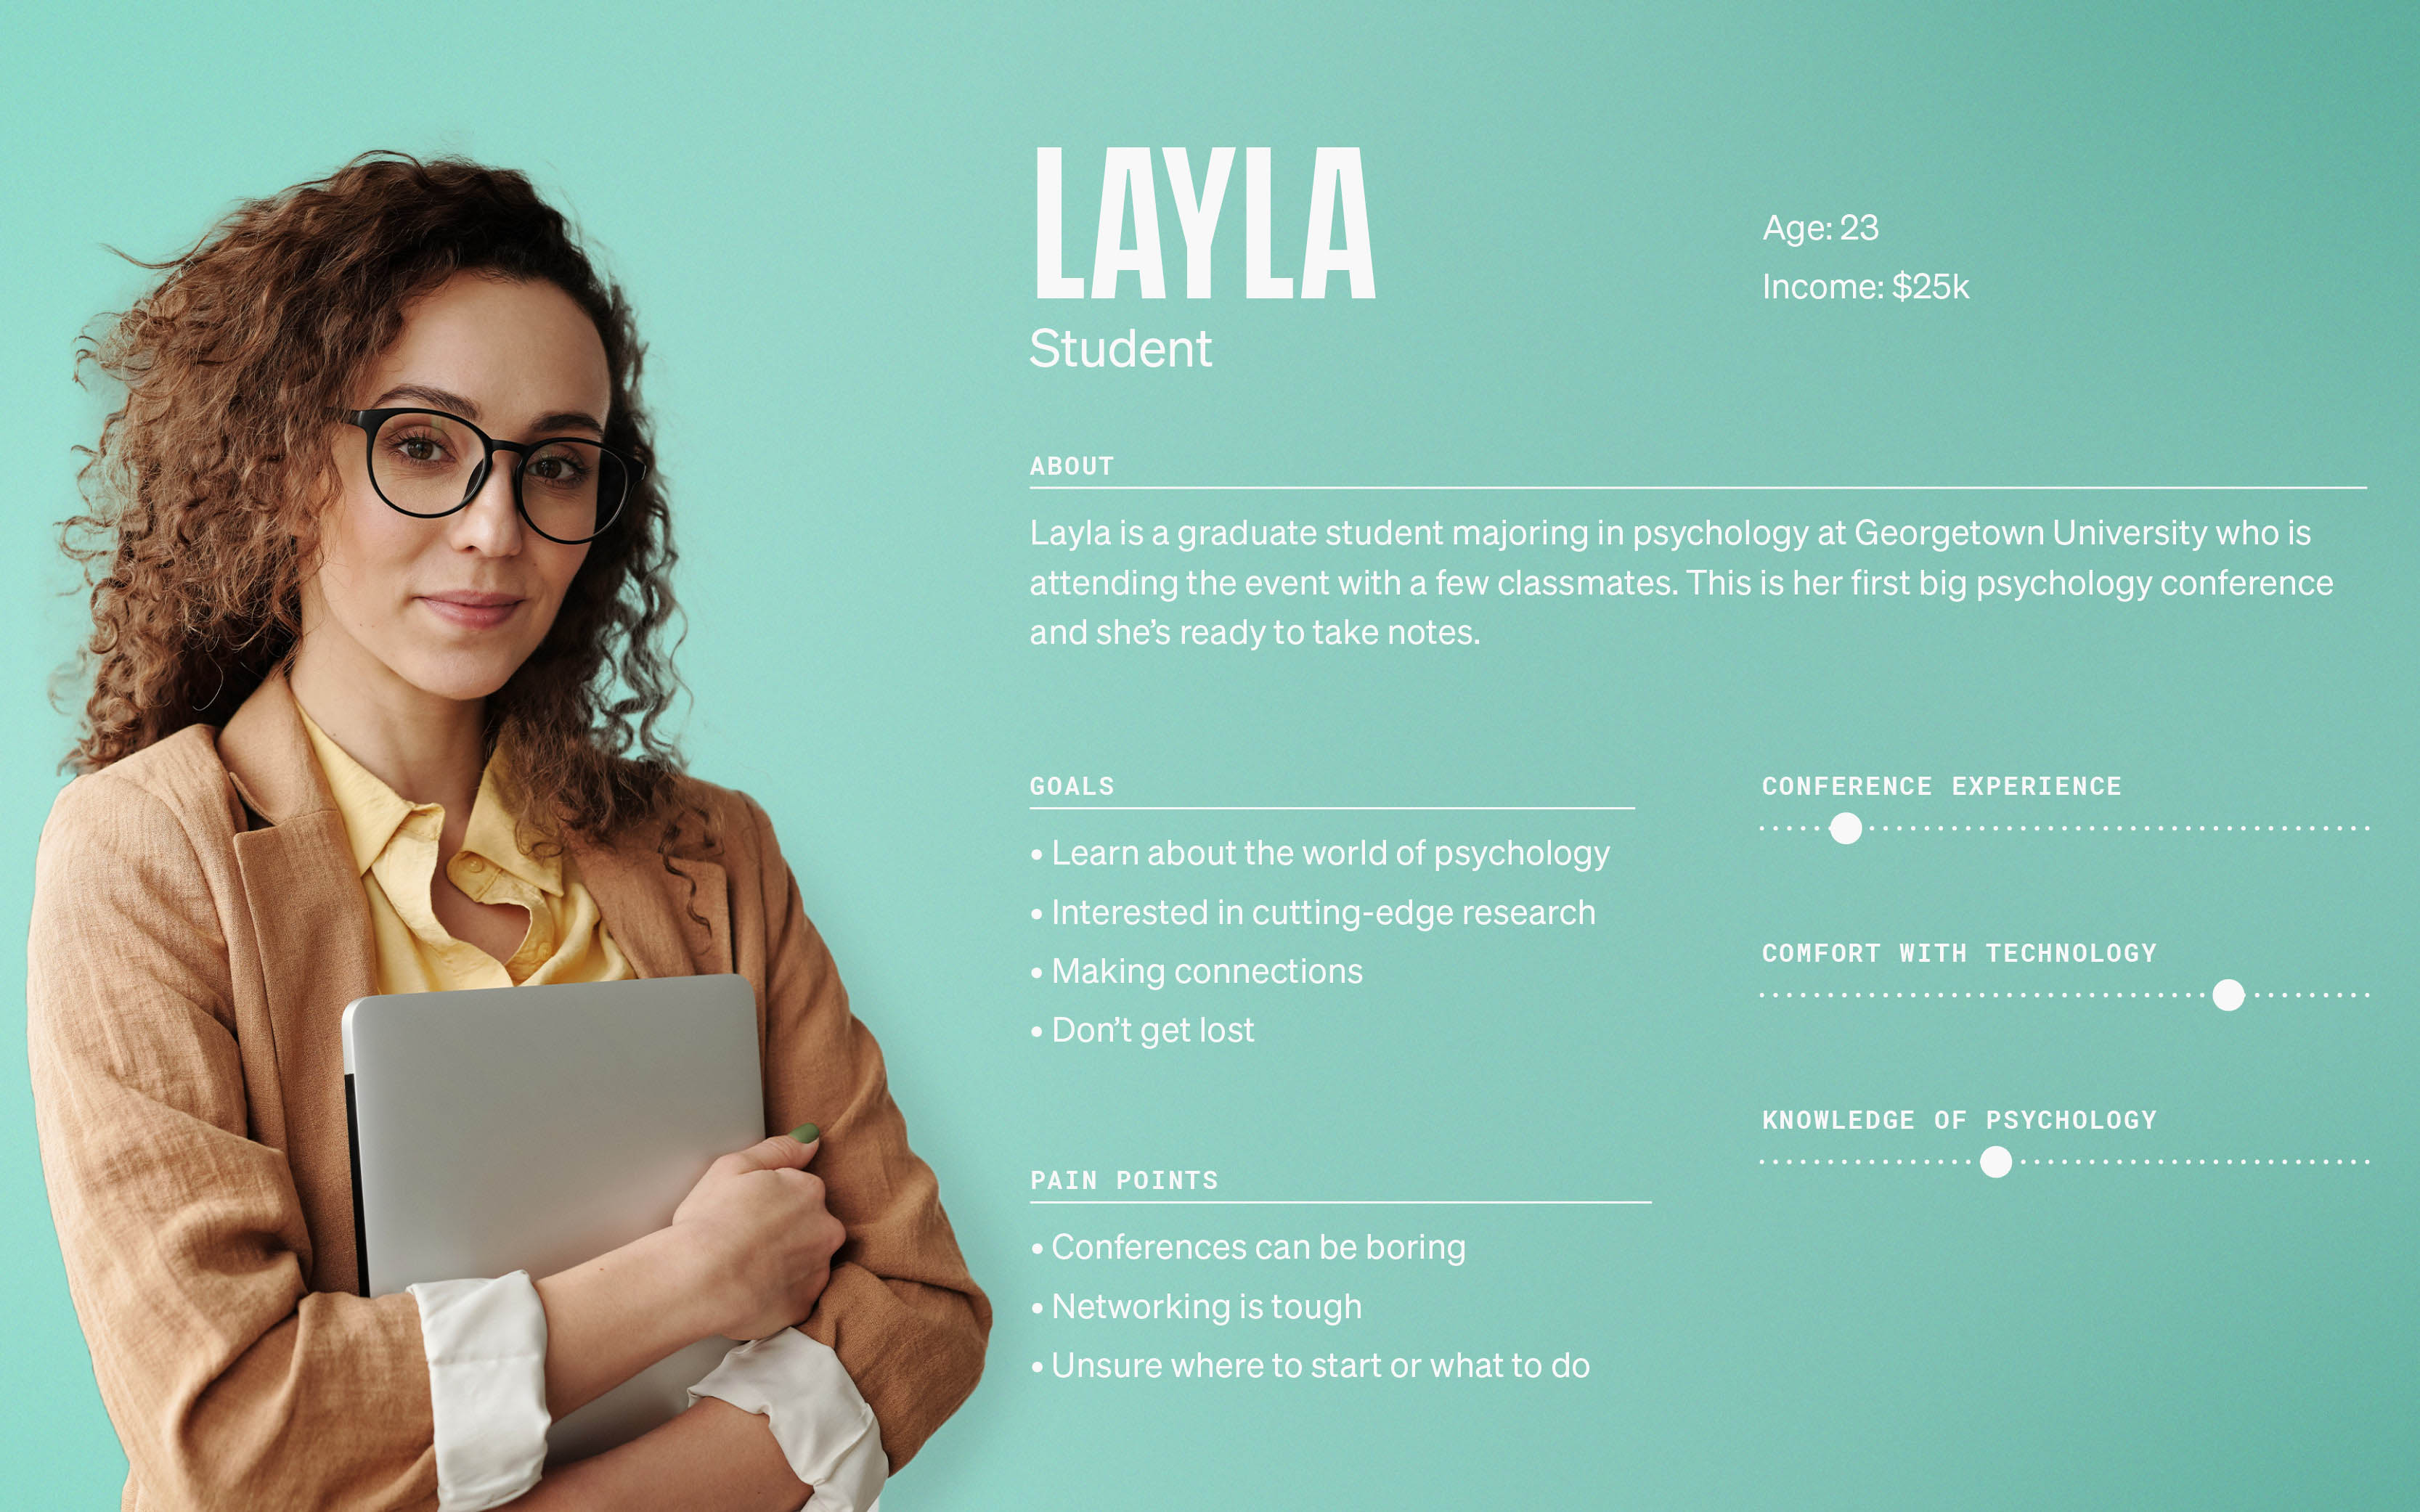 User persona for a student of psychology